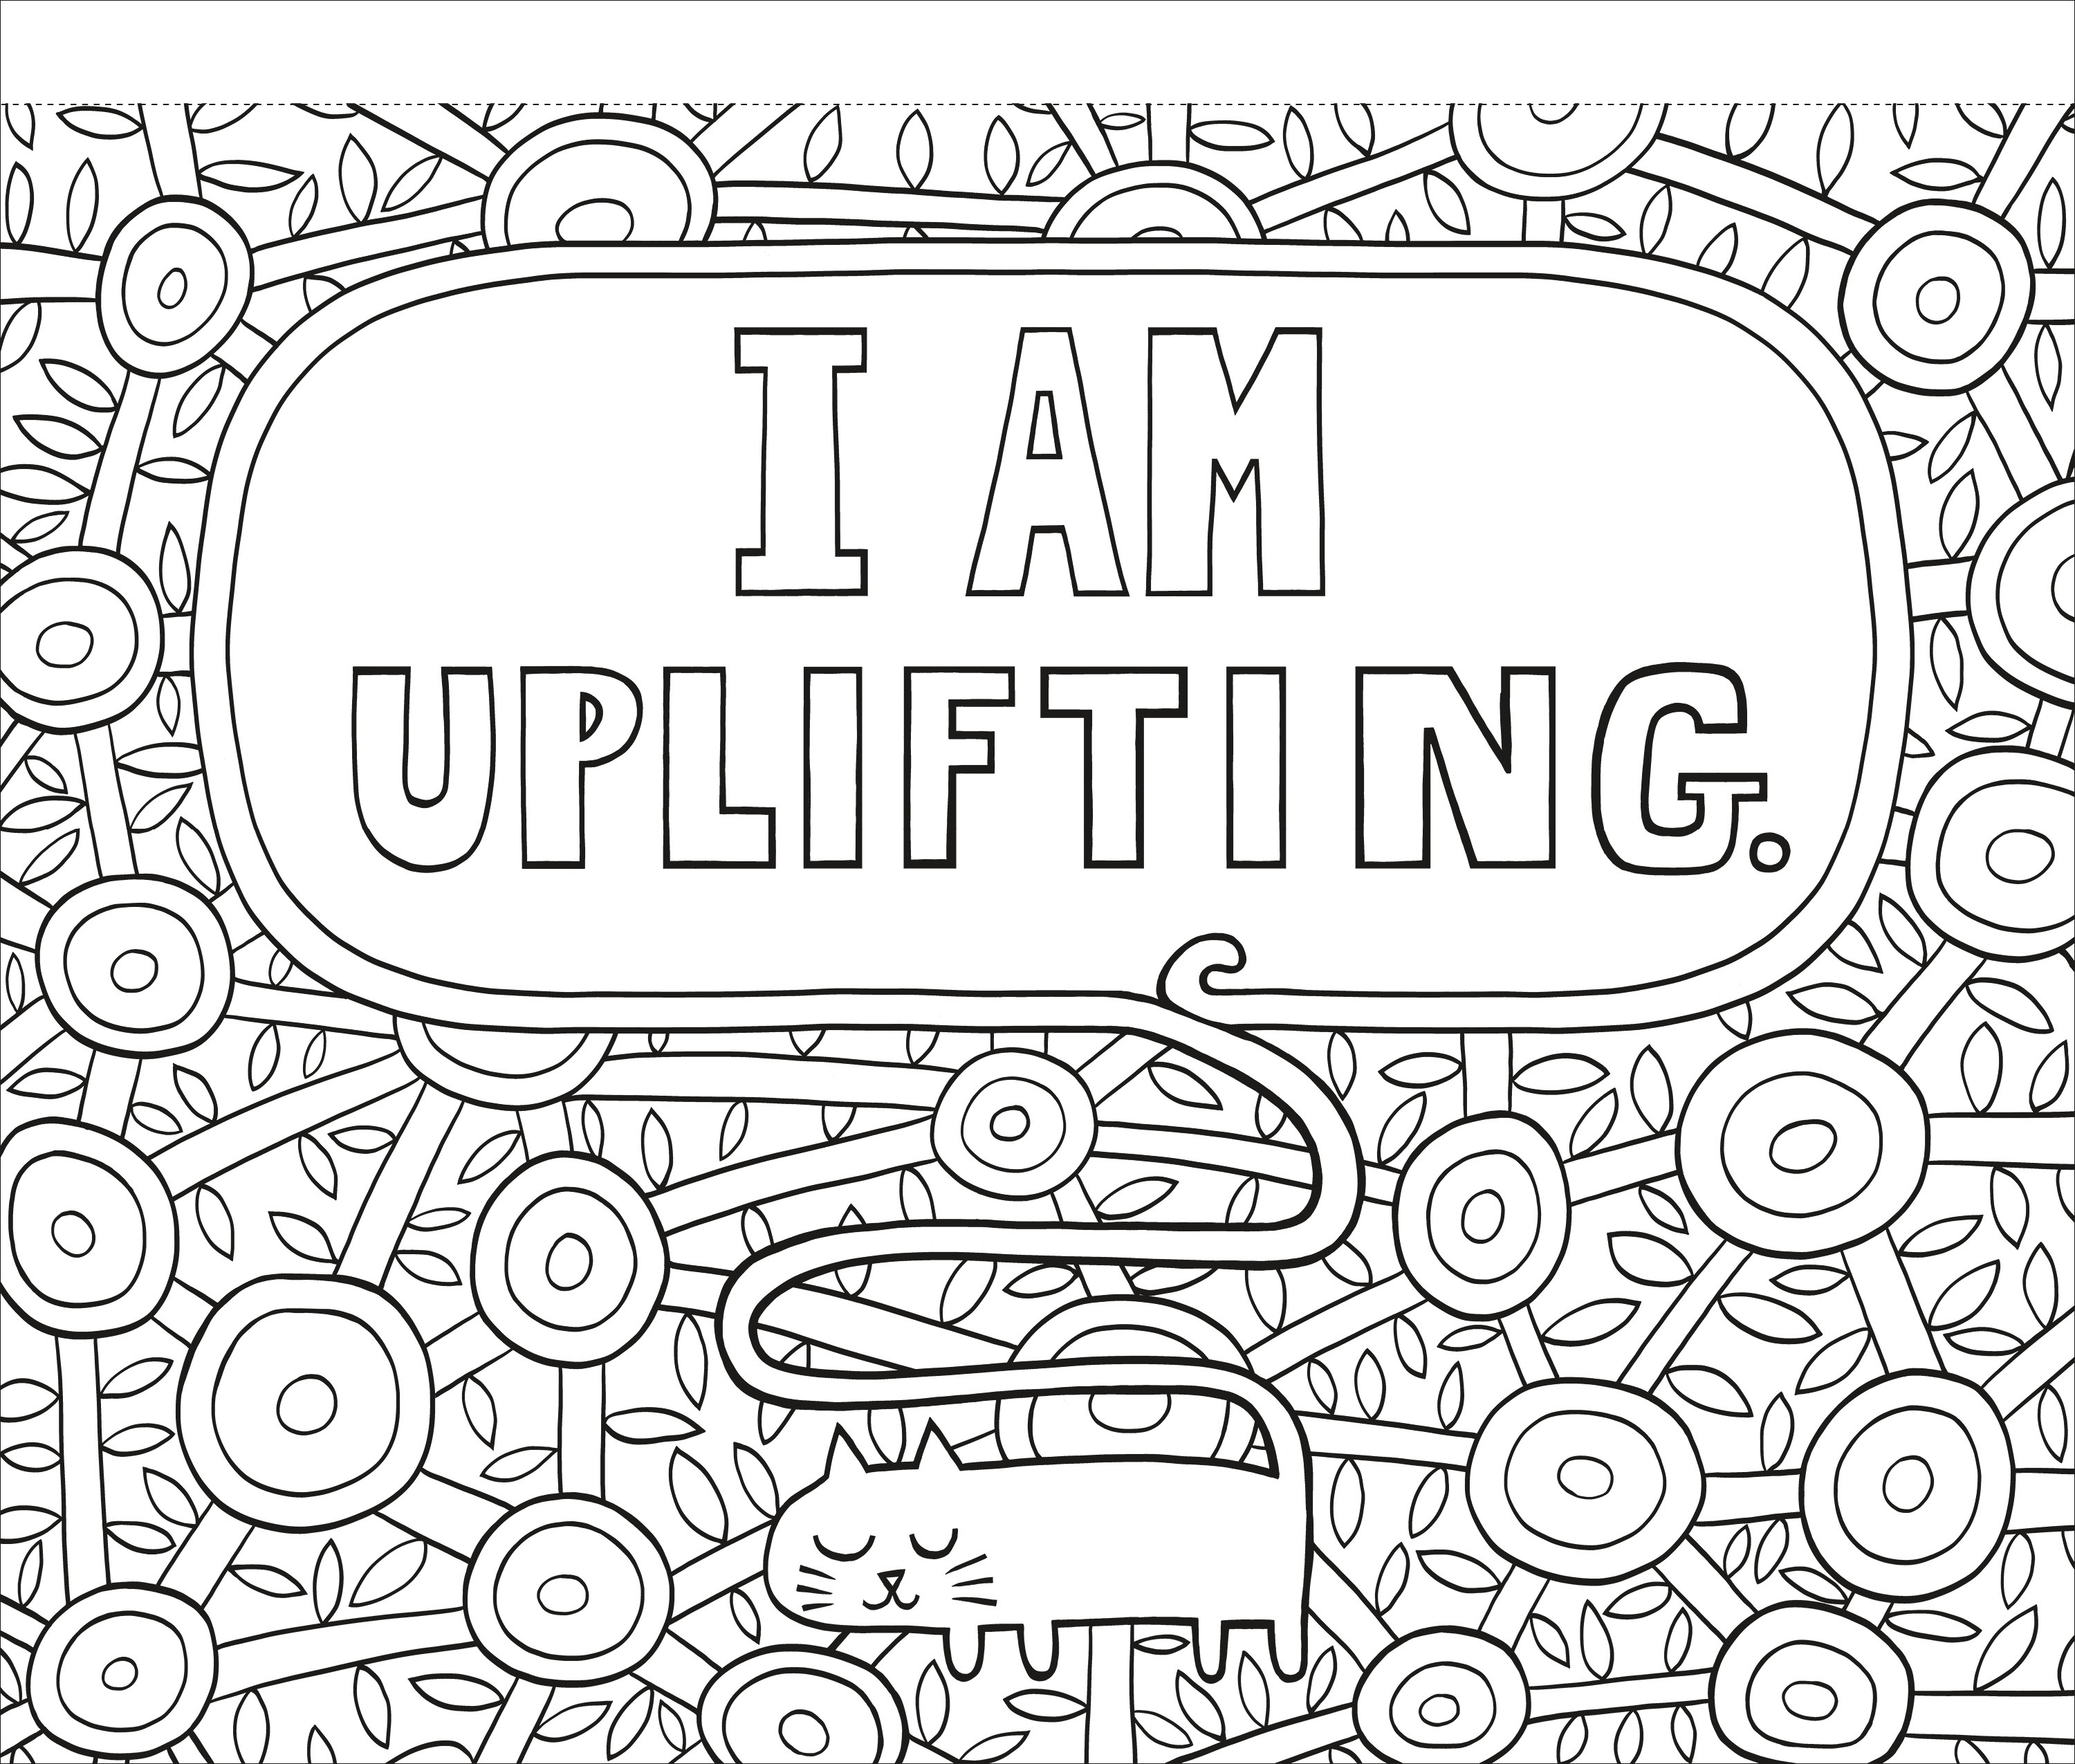 A Coloring Book Of Encouraging Quotes For All Ages That Promotes Creativity And Positive Thinking